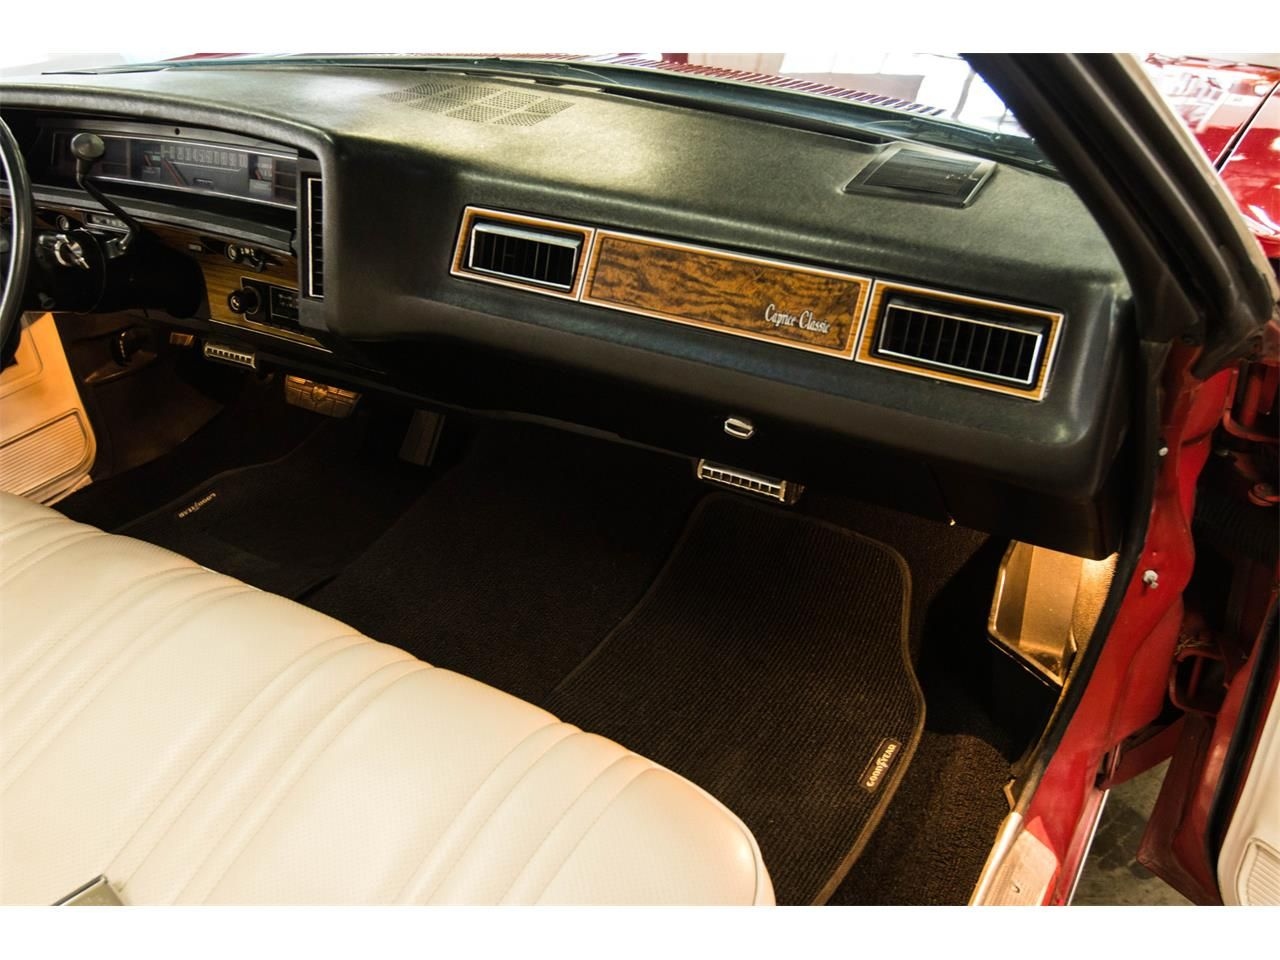 For Sale: 1975 Chevrolet Caprice in Fairfield, Cal